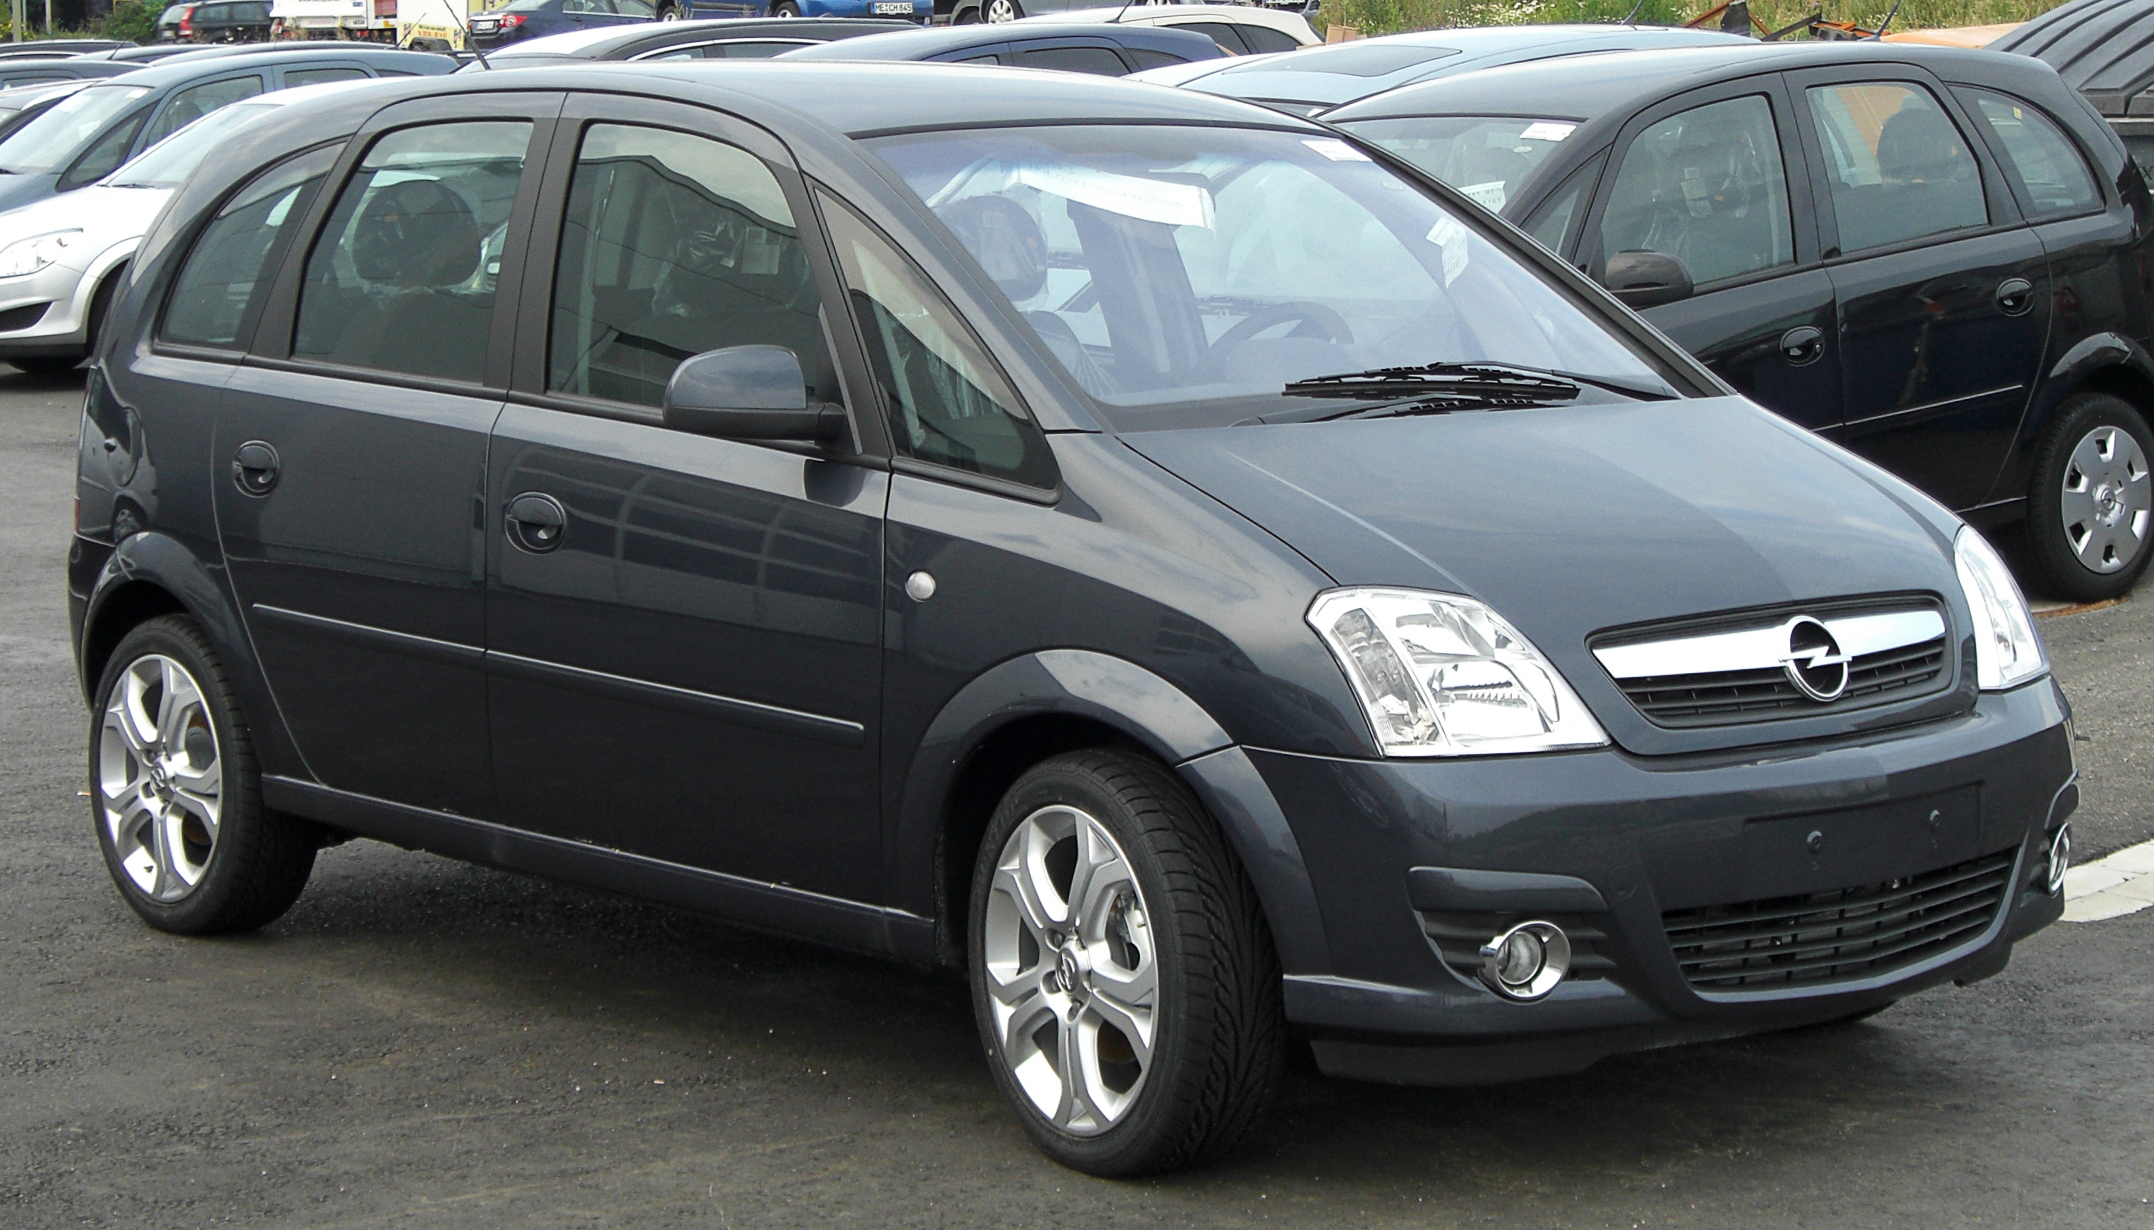 2003 opel meriva 1 7 cdti related infomation specifications weili automotive network. Black Bedroom Furniture Sets. Home Design Ideas